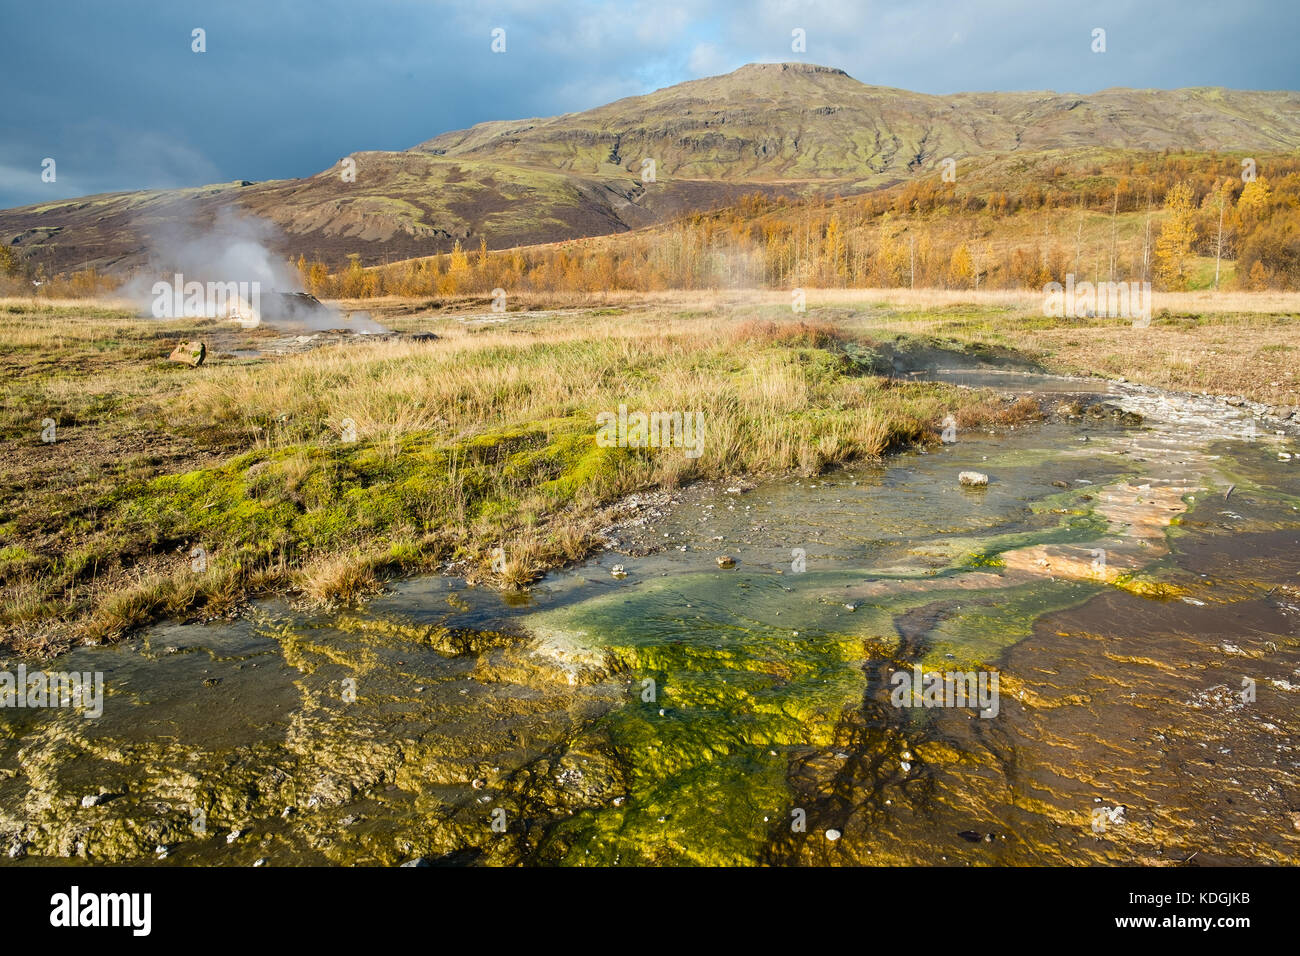 The Geysir area in Haukadalur Iceland shot in autumn, steam coming up of the ground with coloroful mineral deposits - Stock Image